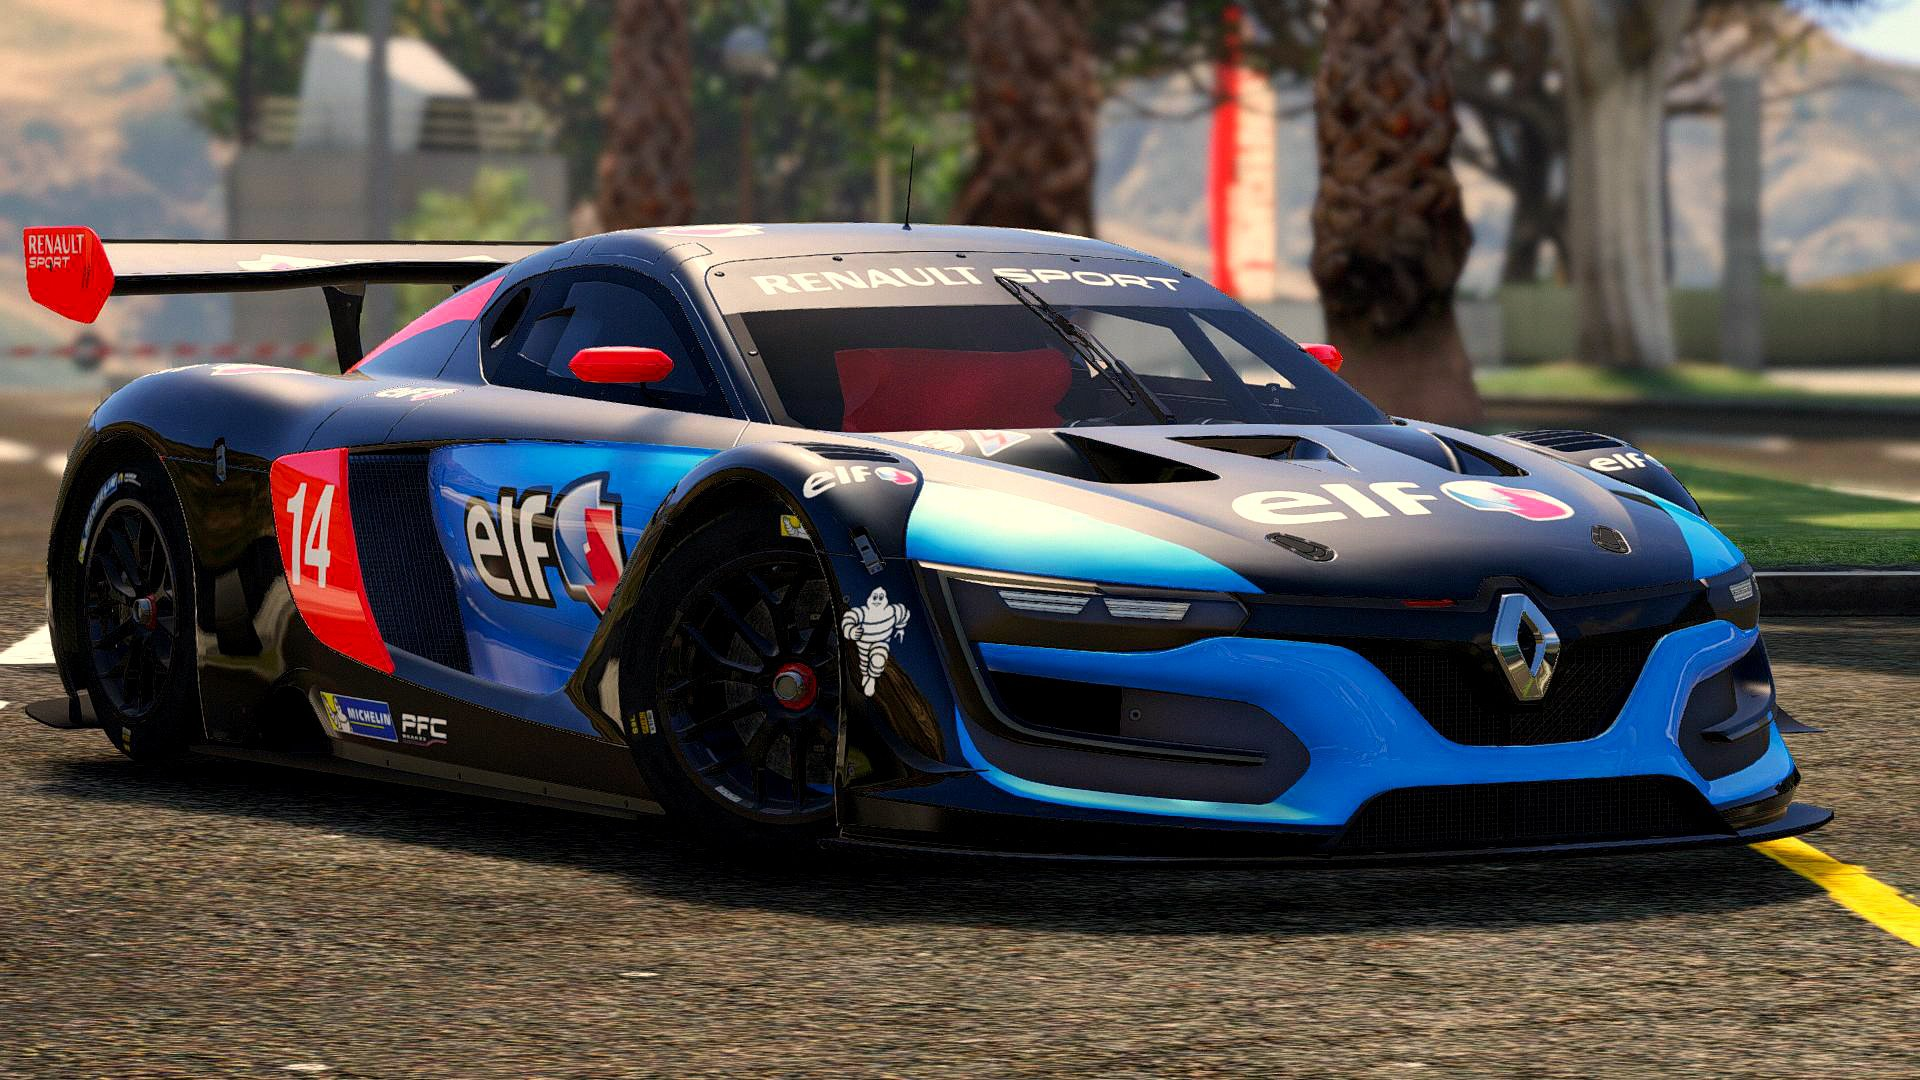 Renault Sport Rs Add On Multi Livery Template Vehicules Pour Gta V Sur Gta Modding